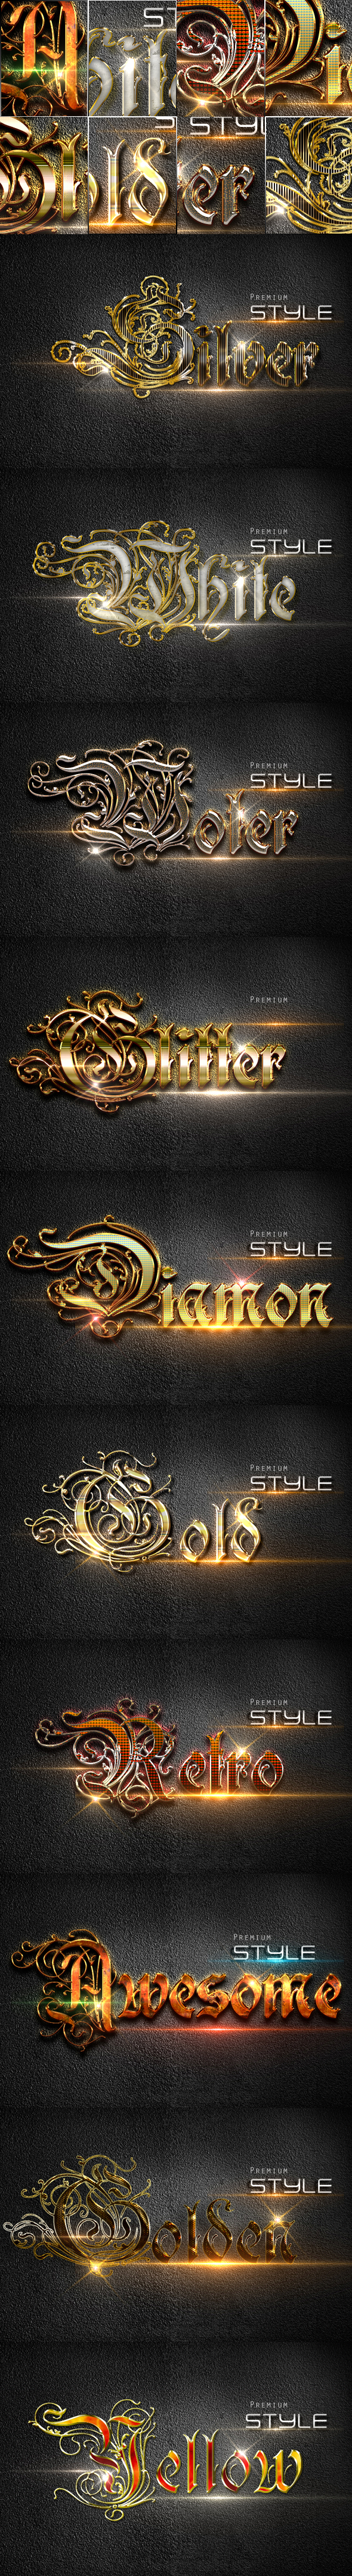 GraphicRiver 10 3D Text Styles D 26 20620530